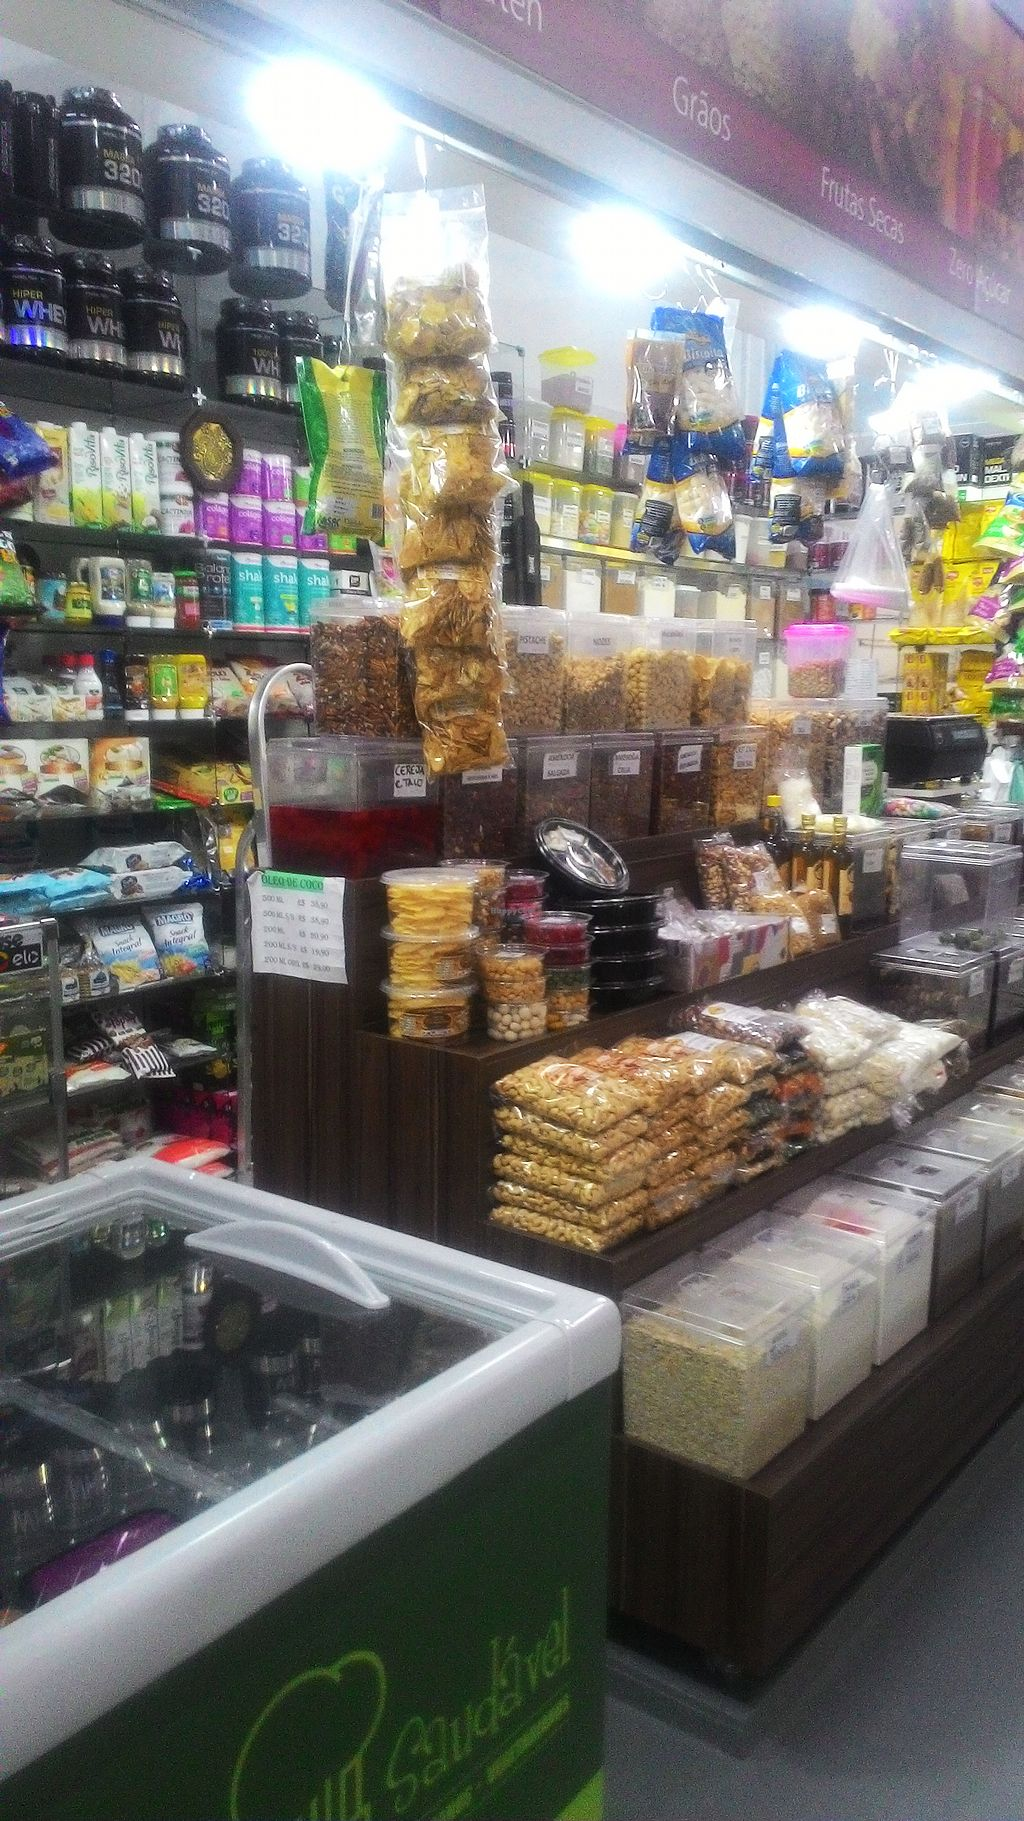 """Photo of Frutos da Terra  by <a href=""""/members/profile/itsumiyo"""">itsumiyo</a> <br/>Store <br/> February 28, 2018  - <a href='/contact/abuse/image/113348/365087'>Report</a>"""